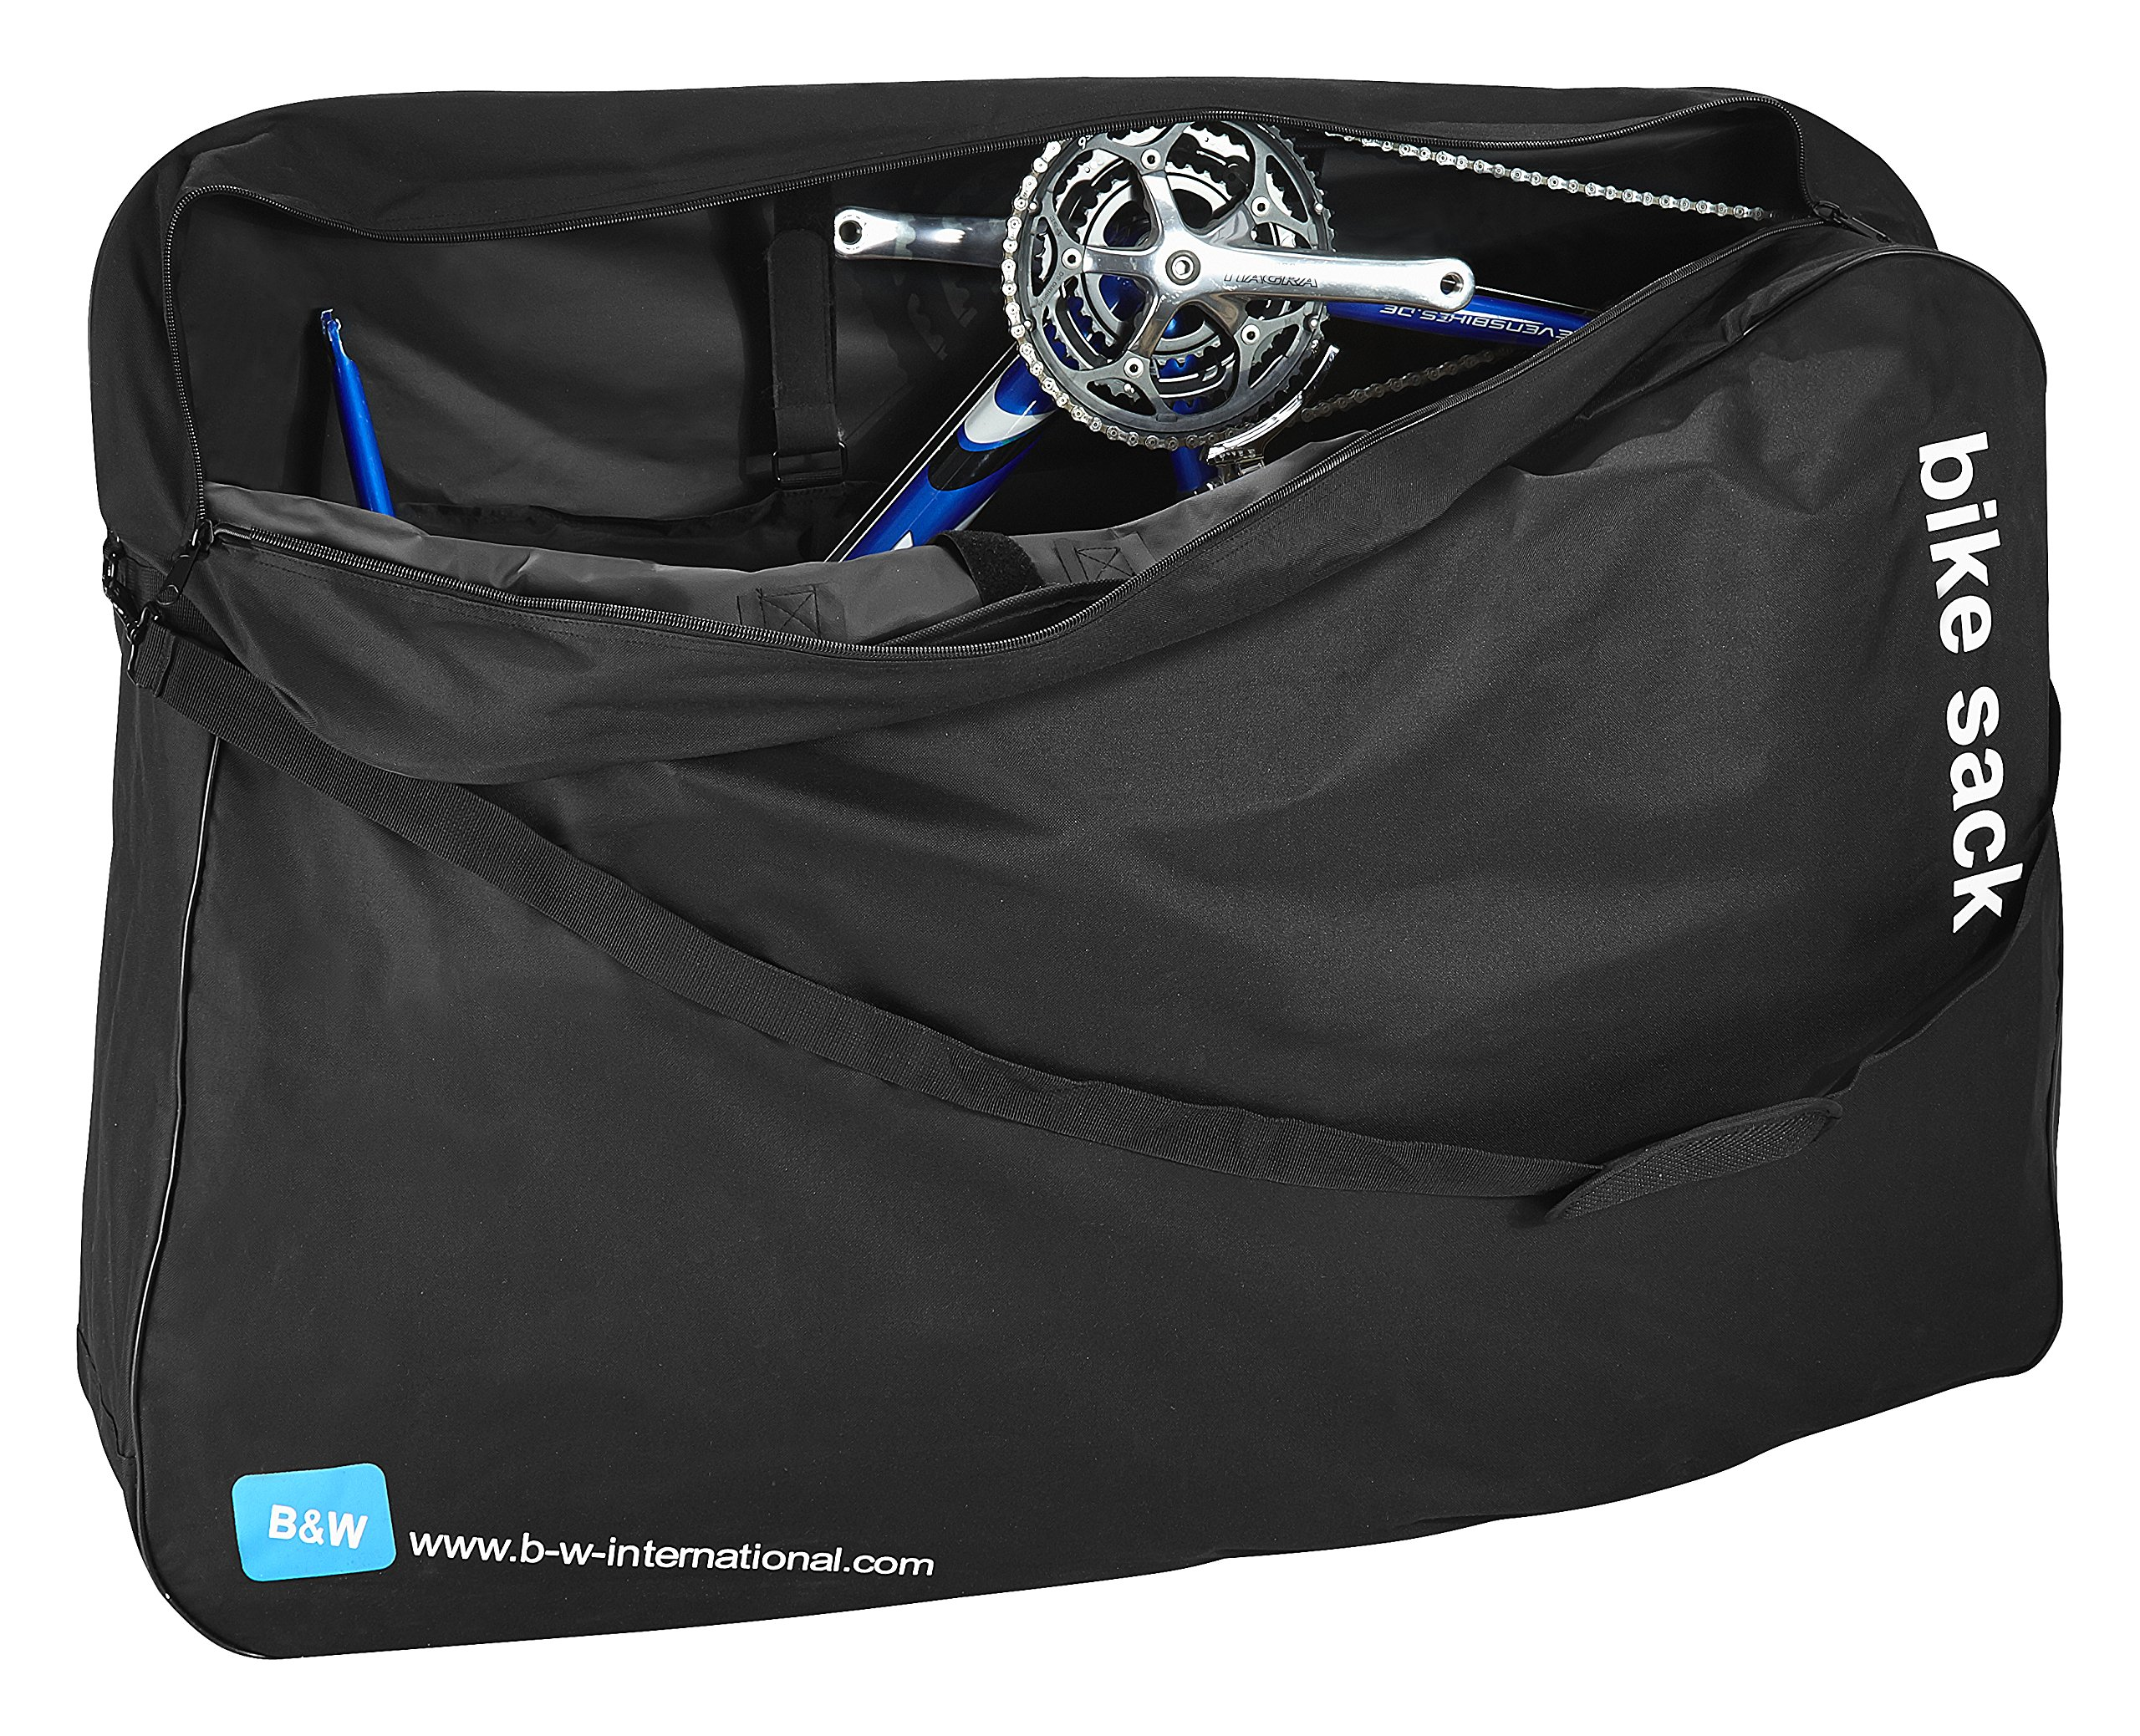 B&W International Bike Sack - Bike Sack (96250/N) by B&W International (Image #2)